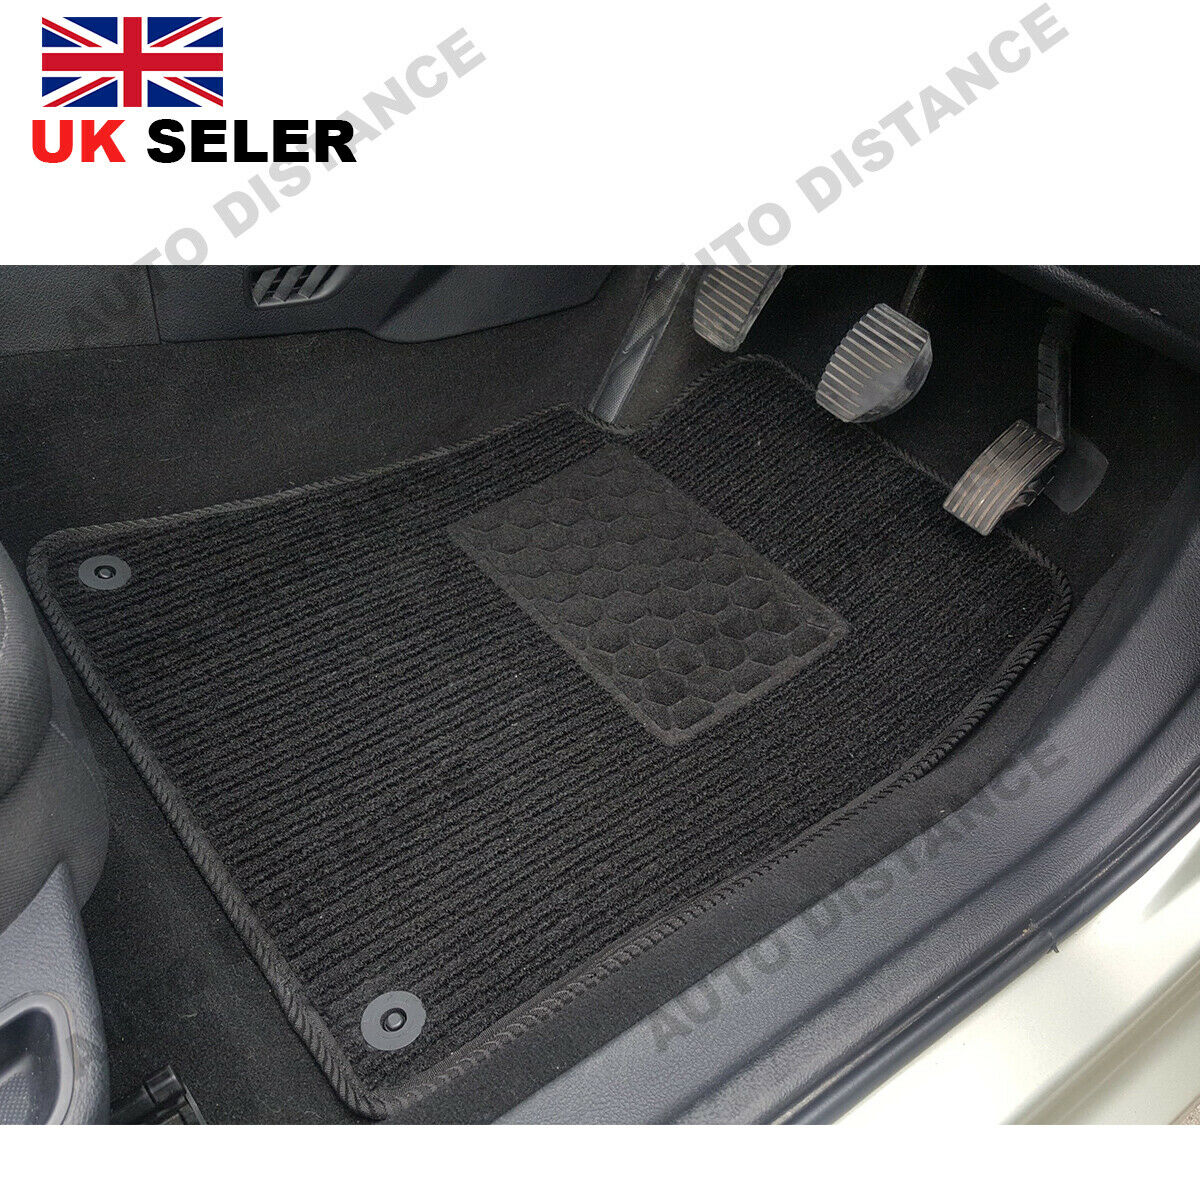 Tailored-Quality-Black-Carpet-Car-Mats-With-Heel-Pad-Nissan-Leaf-2014-2017